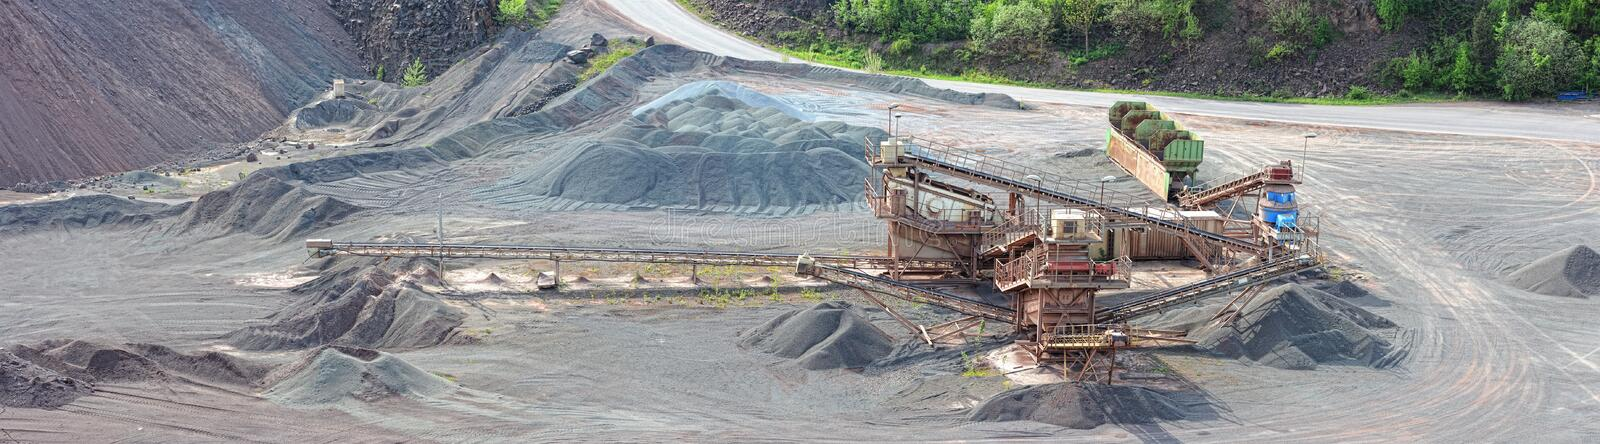 Stone crusher machine in an open pit mine stock photo